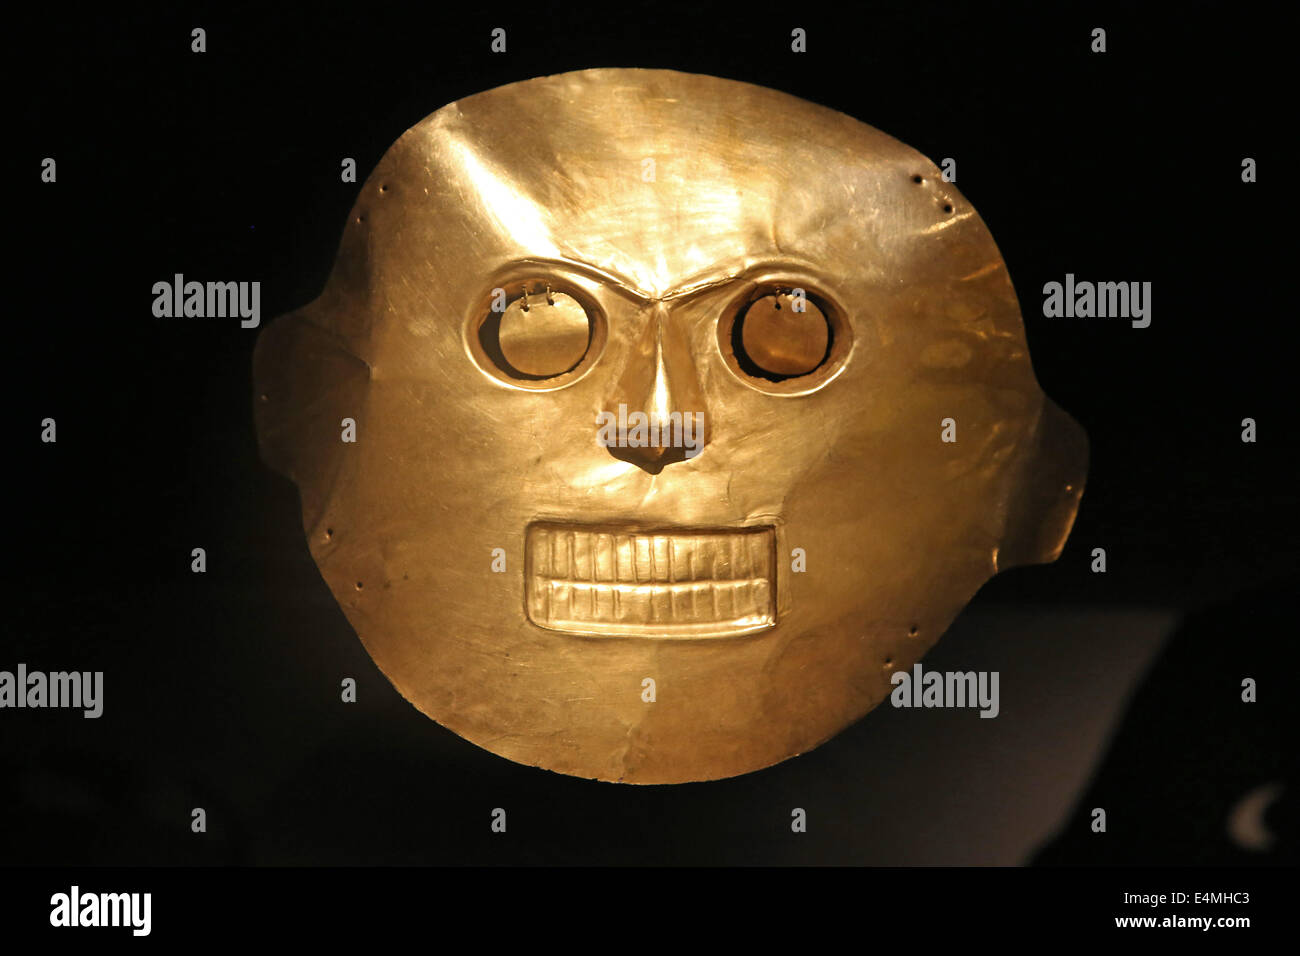 Pre Colombian gold work on display in the Museo del Oro, Gold museum, Bogota, Colombia - Stock Image